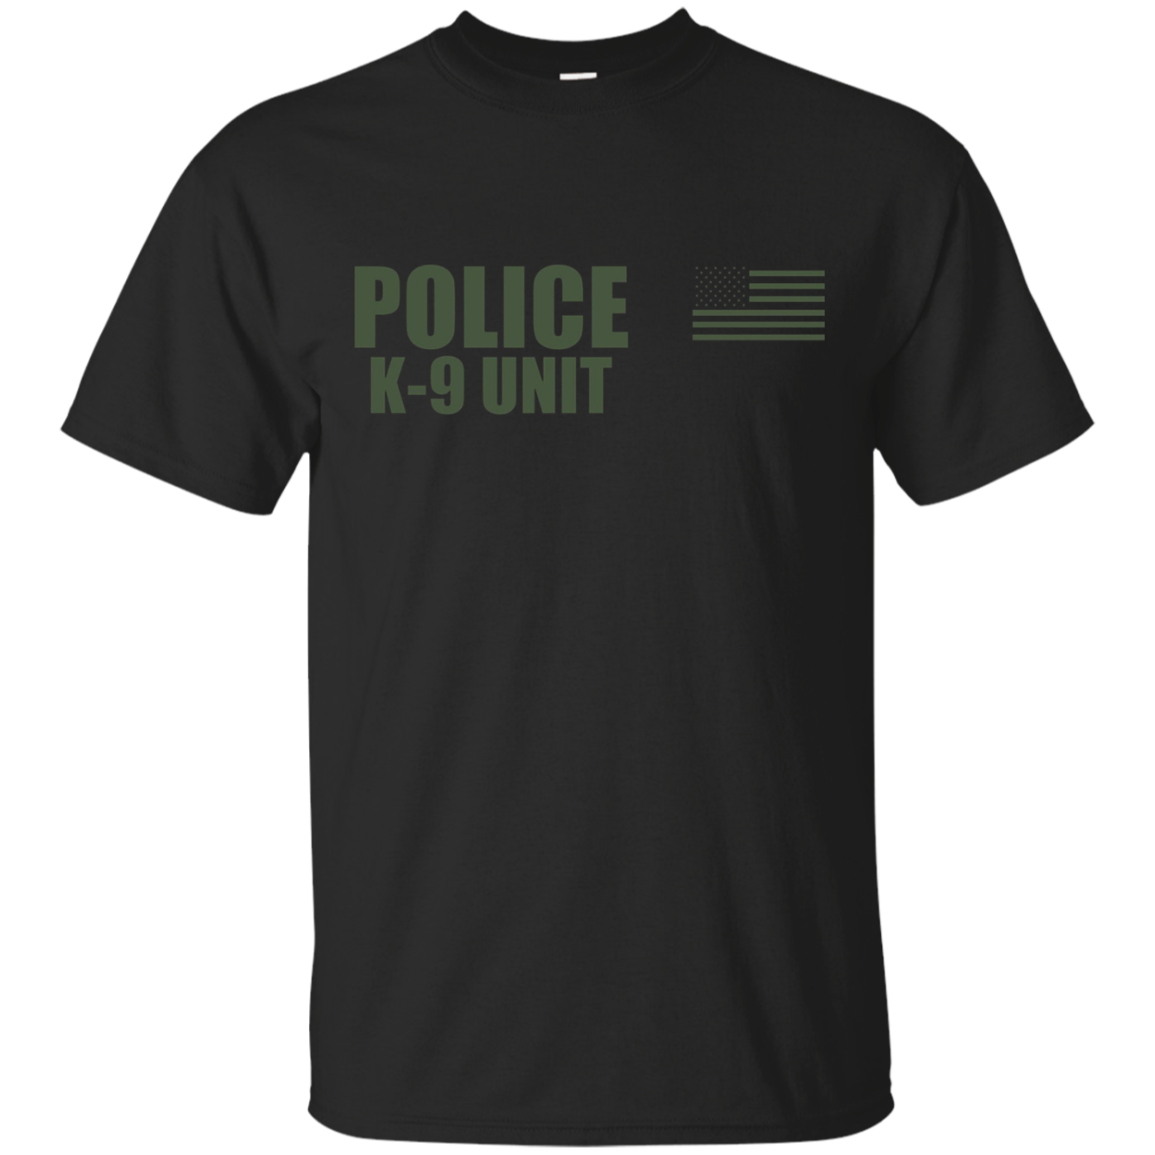 Police K-9 Unit On Duty Uniform T-Shirt